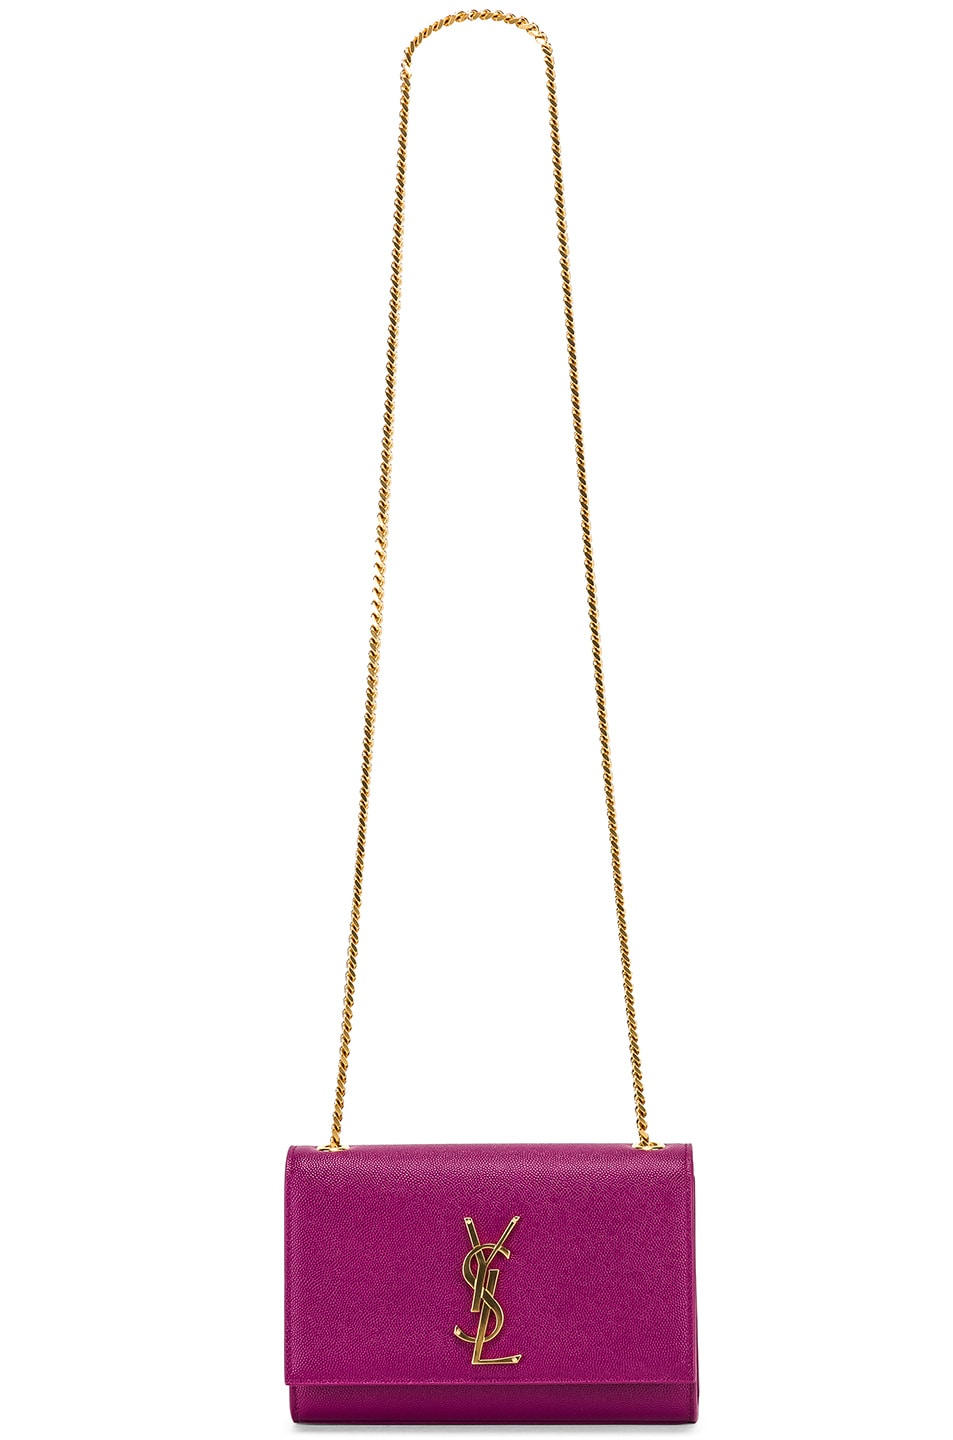 Image 6 of Saint Laurent Small Kate Monogramme Chain Bag in Light Grape